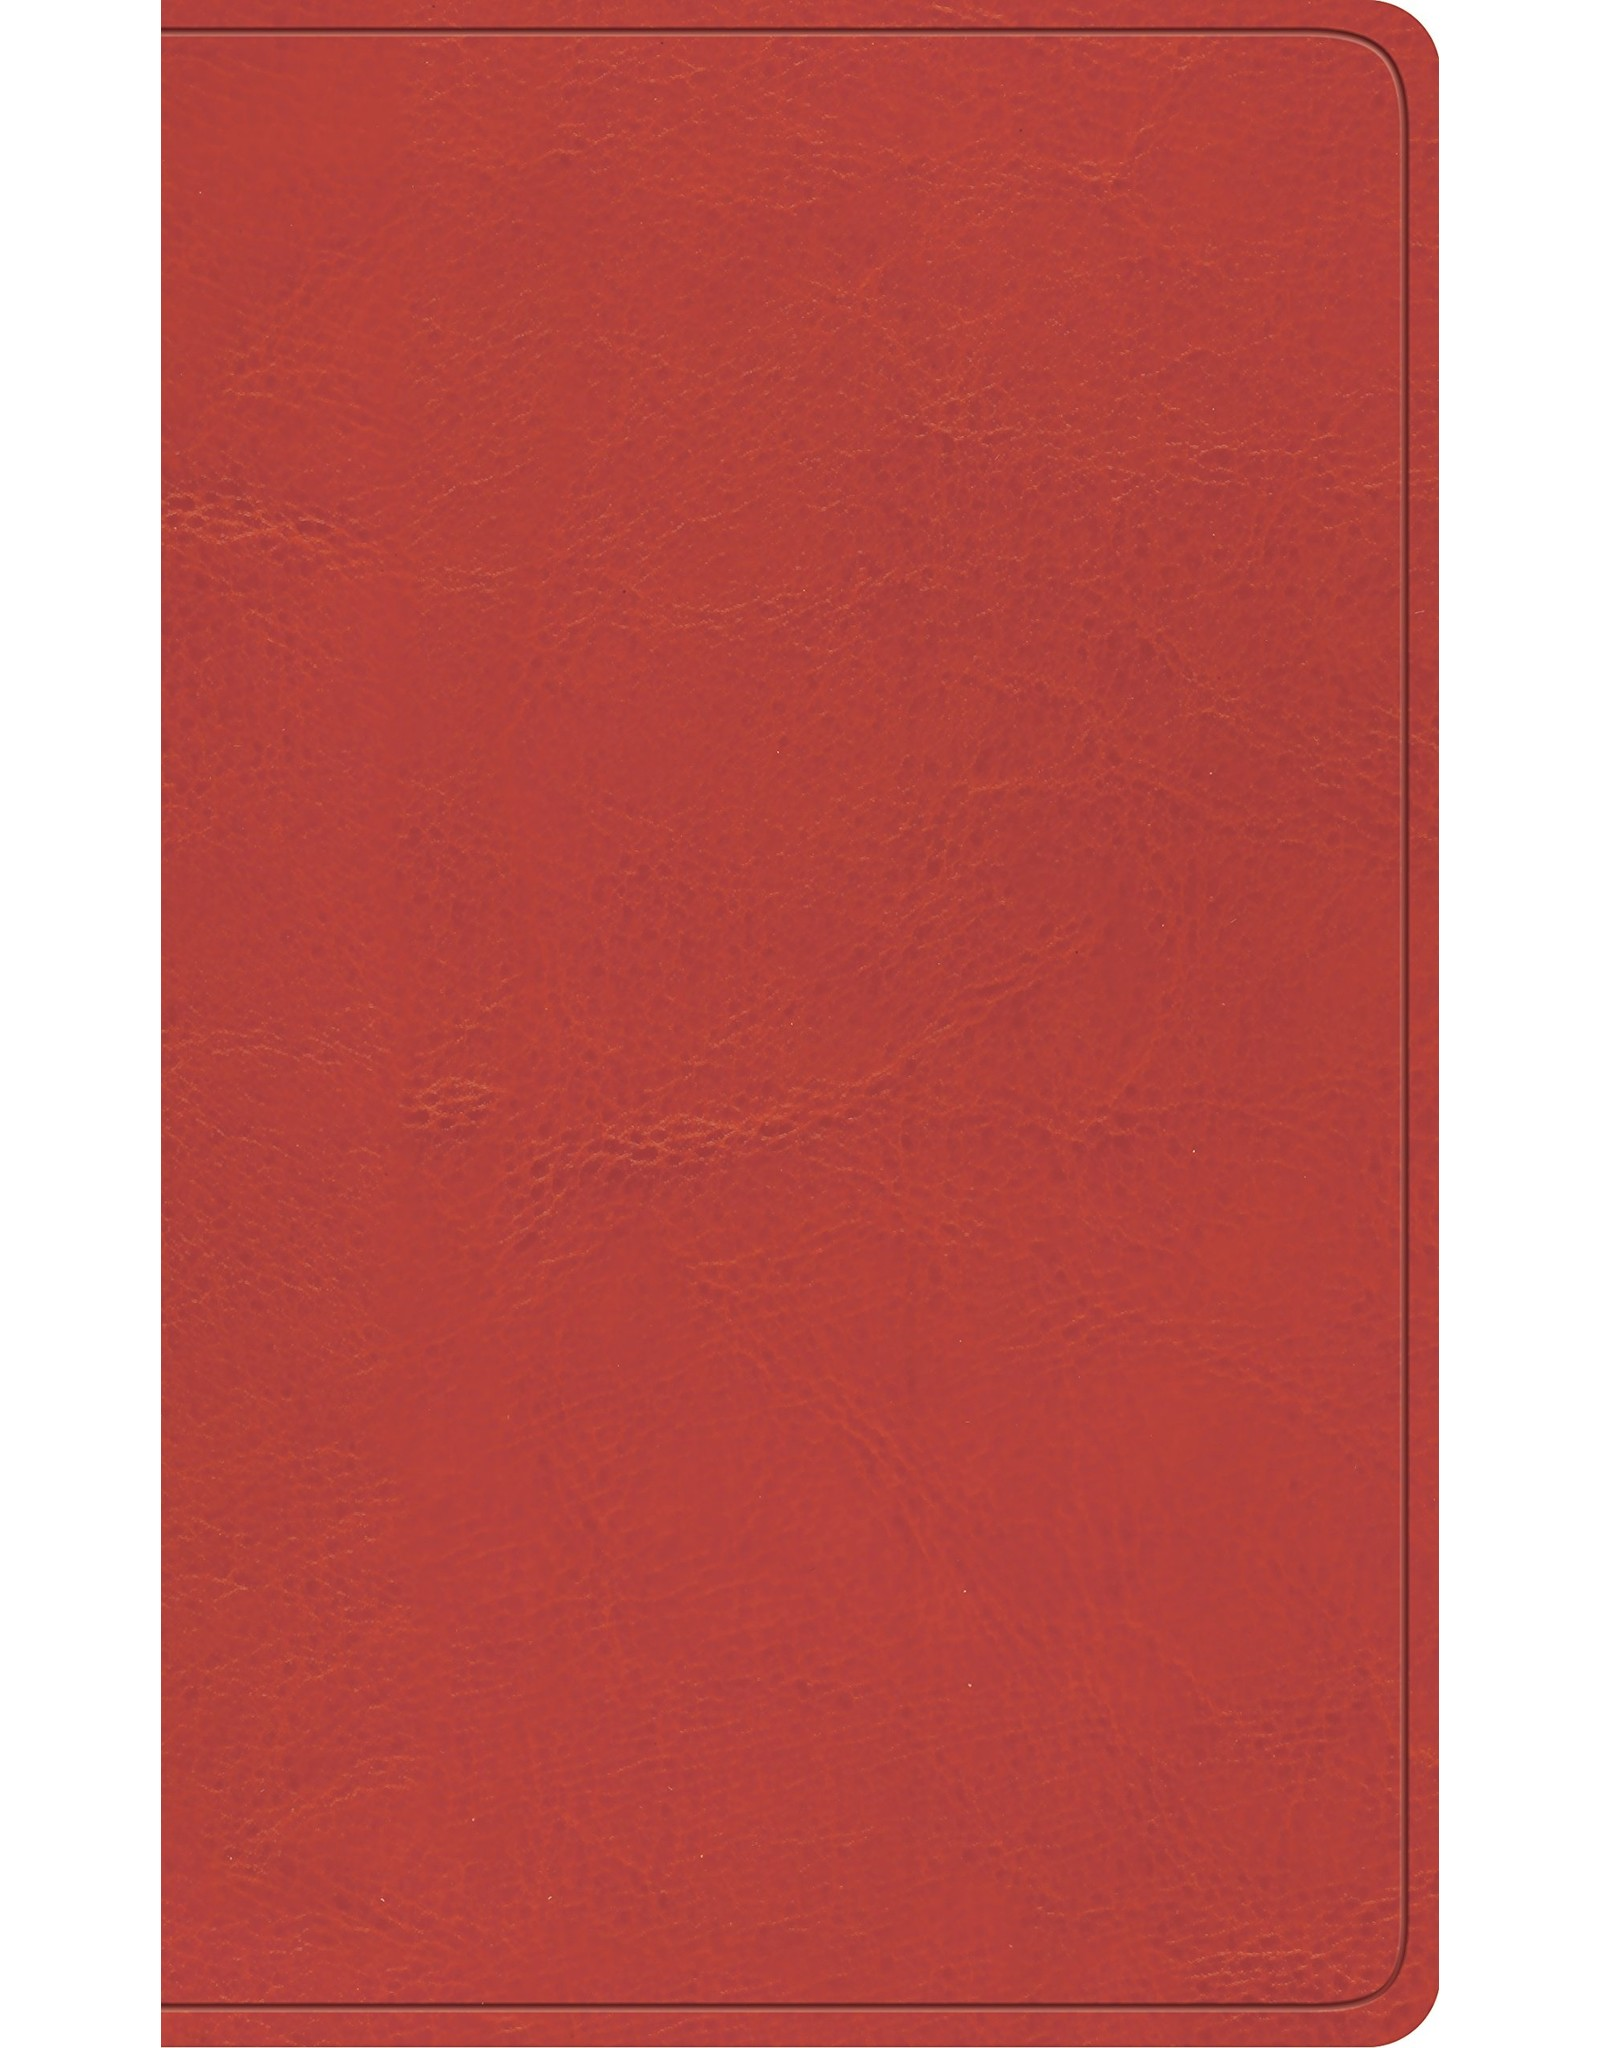 Crossway / Good News ESV Vest Pocket New Testament (Trutone Coral)